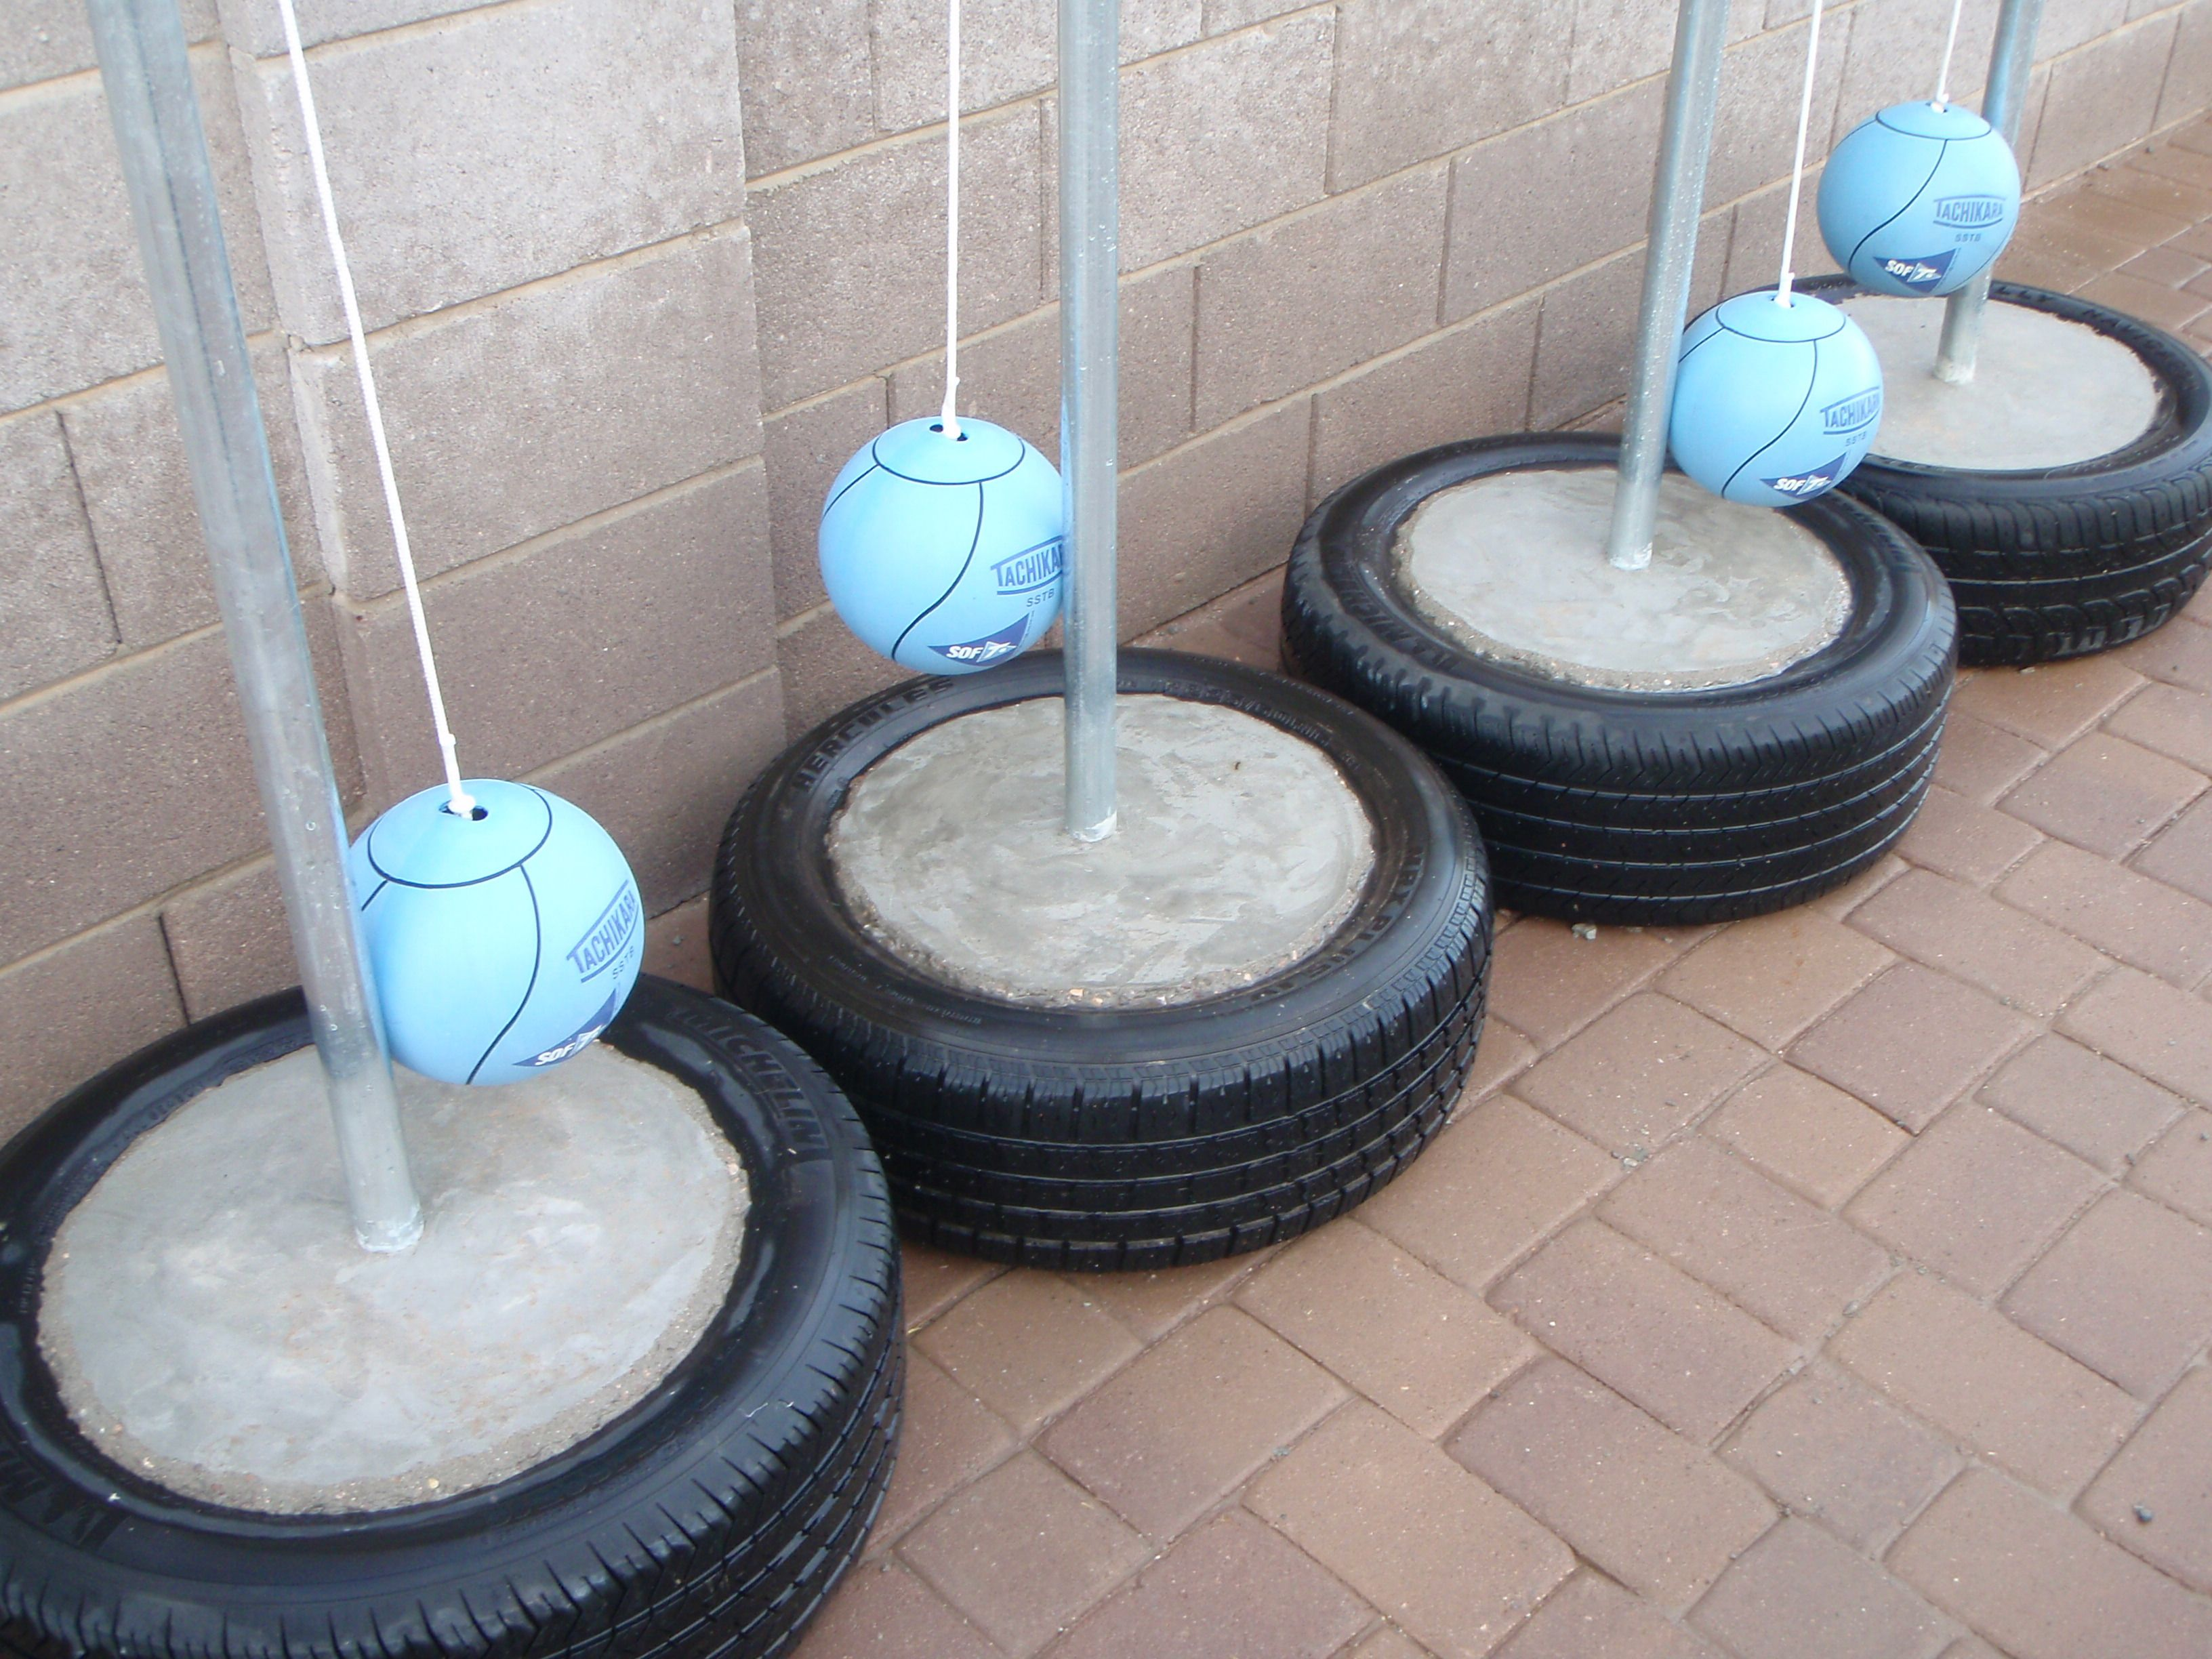 Instructional Video On How To Learn To Make A Portable Concrete Base Tire Tetherball Set That Is Made Out Of Cement And An Ol Tyres Recycle Tetherball Concrete